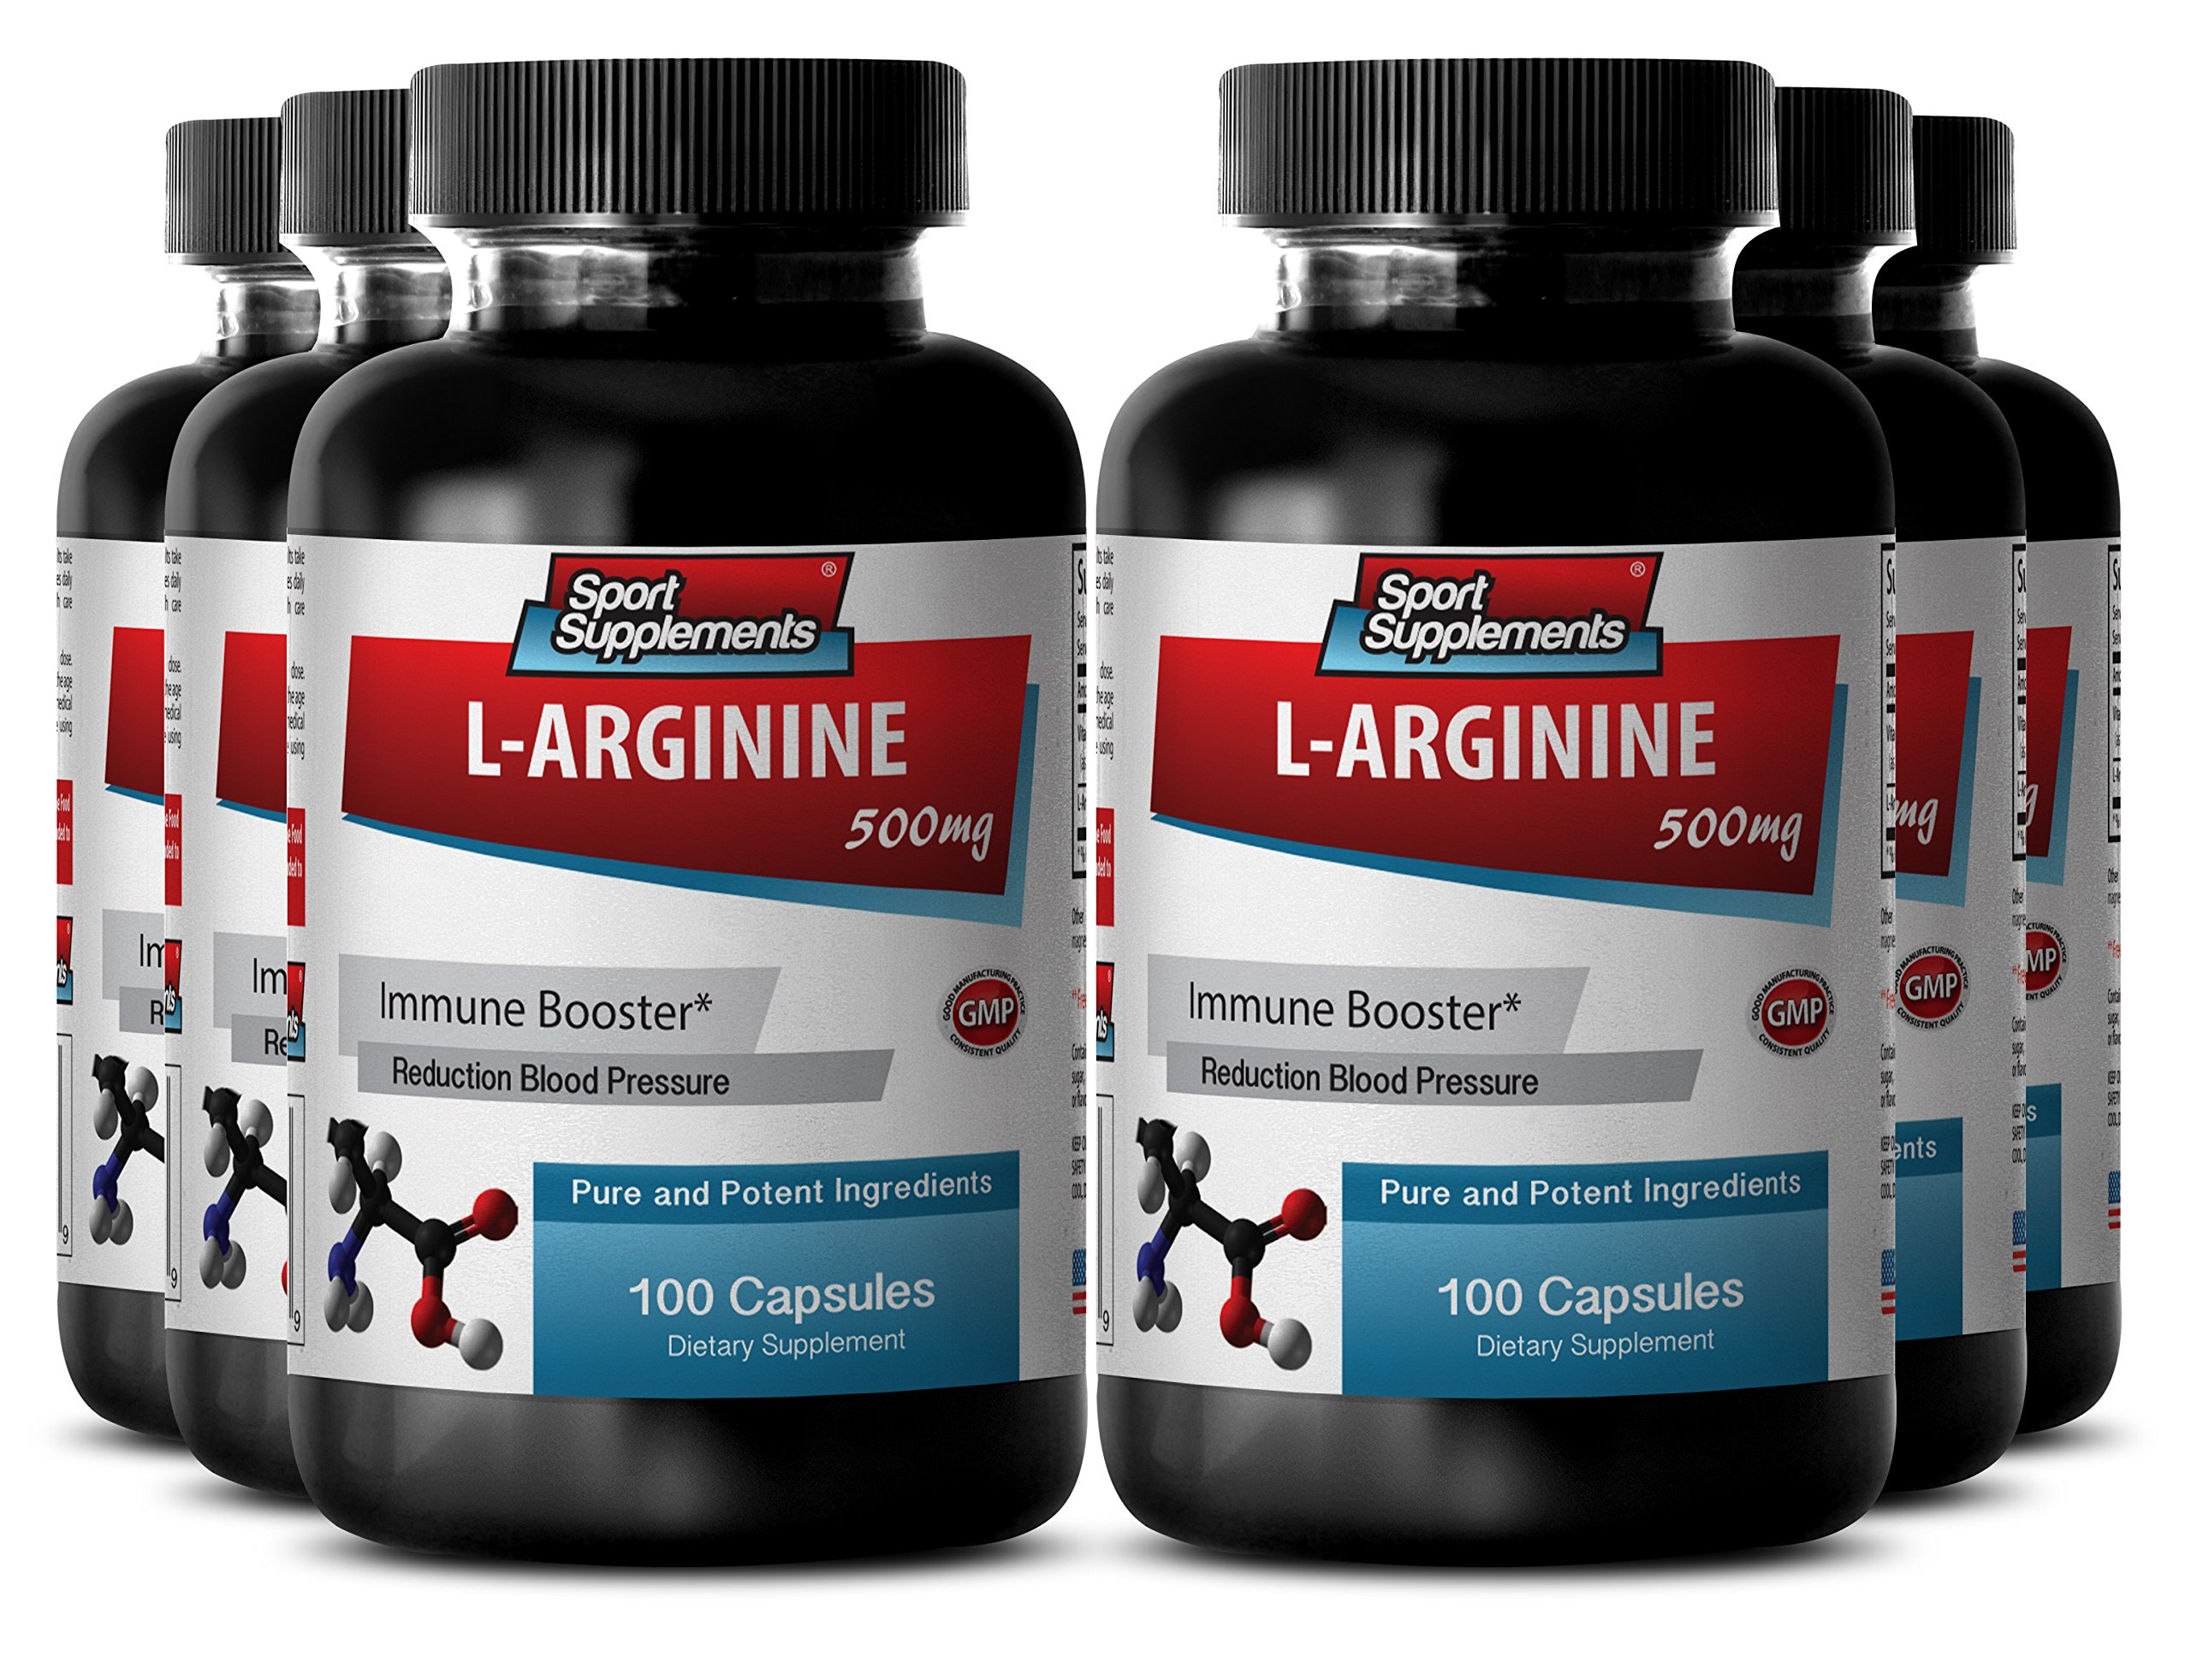 Vitamin B6 oil for hair - L-Arginine 500mg - Important for hair care (6 Bottles - 600 Capsules)